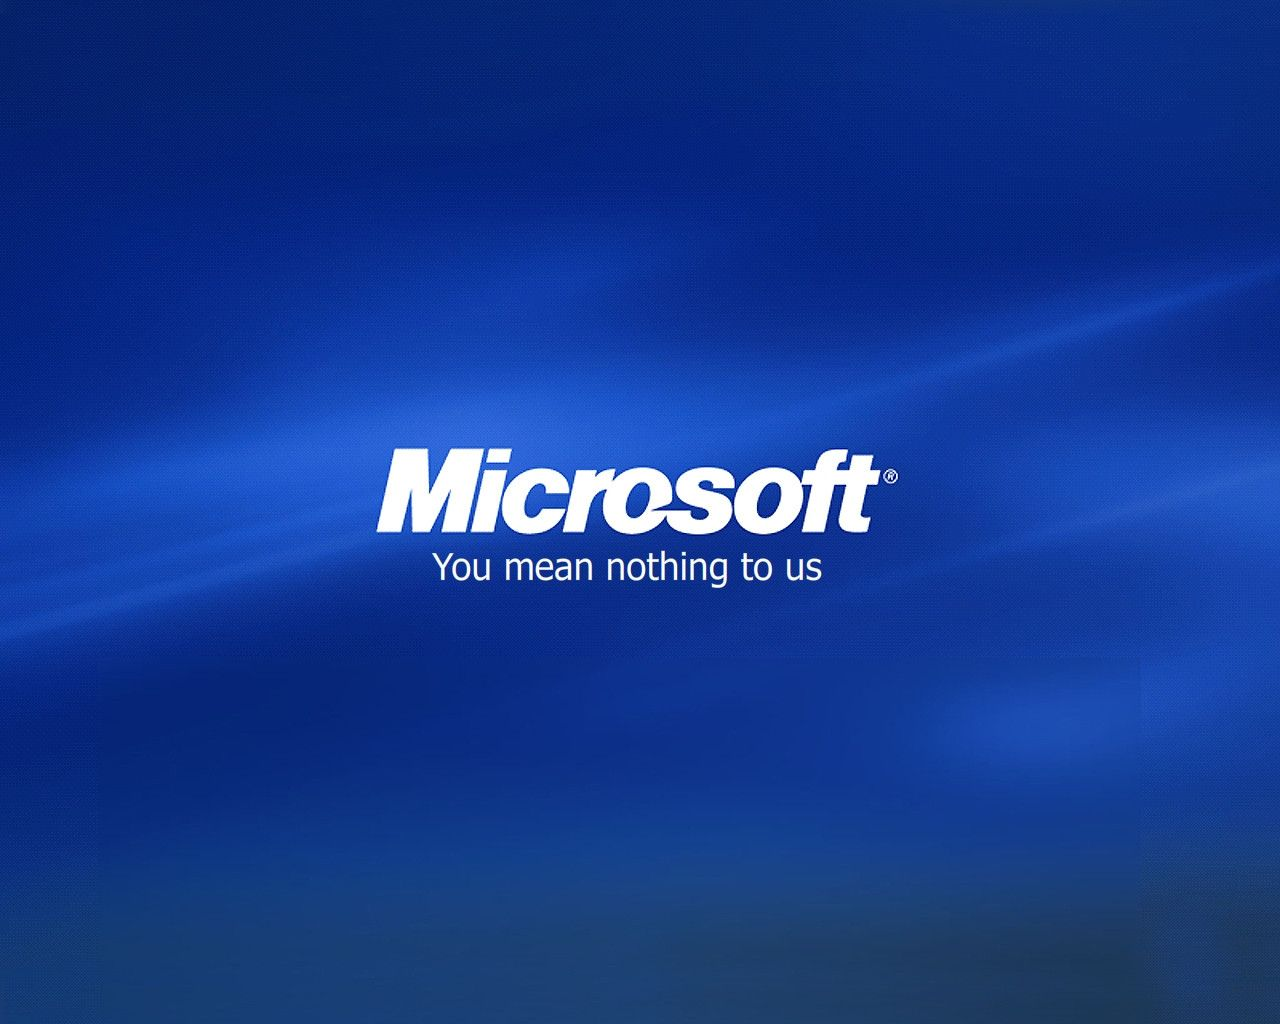 Wallpaper Microsoft